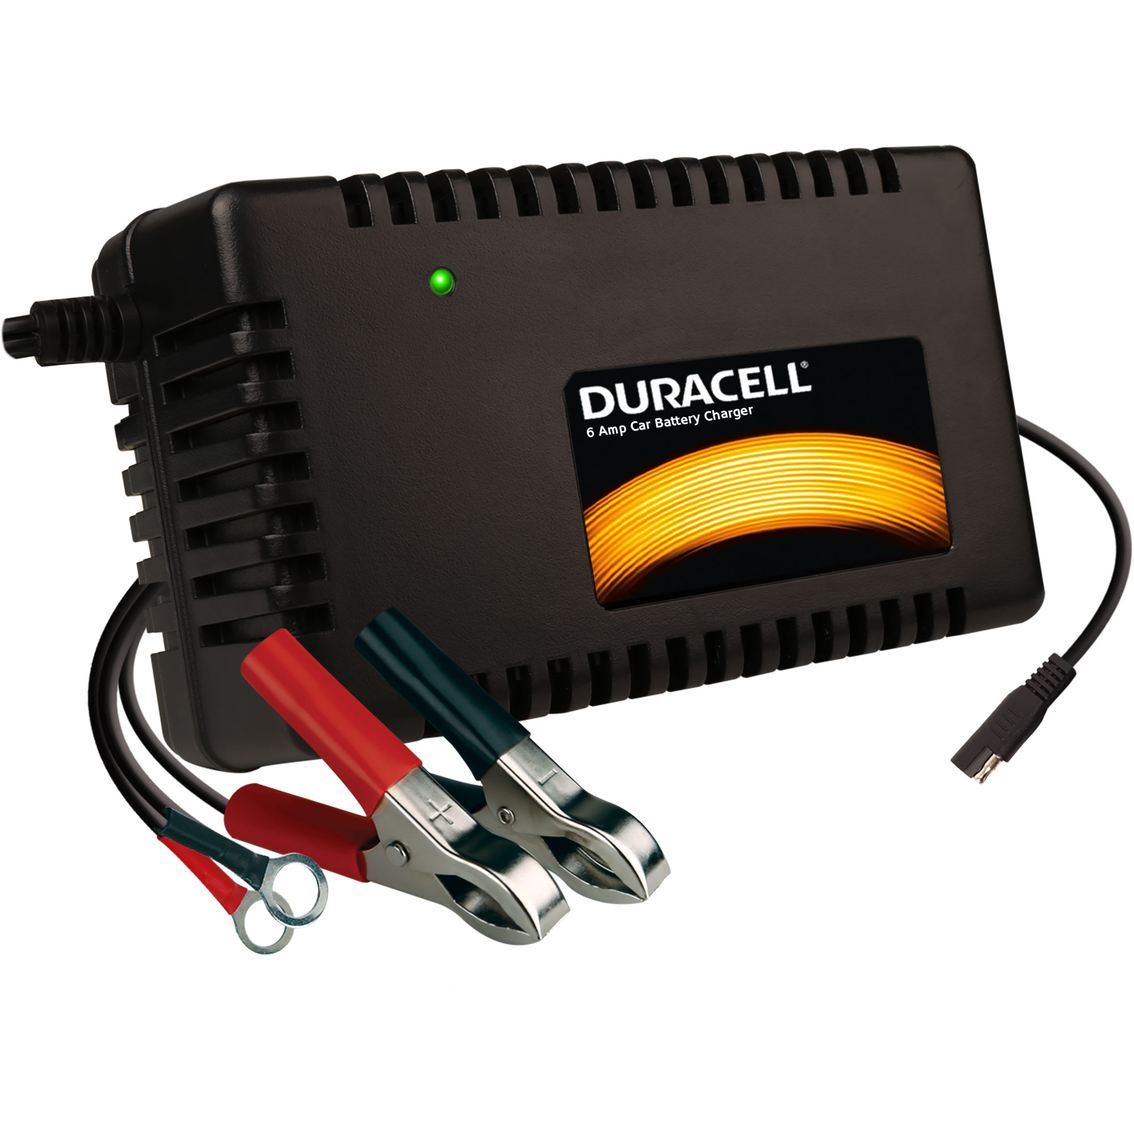 Duracell 6 Amp Battery Charger And Maintainer